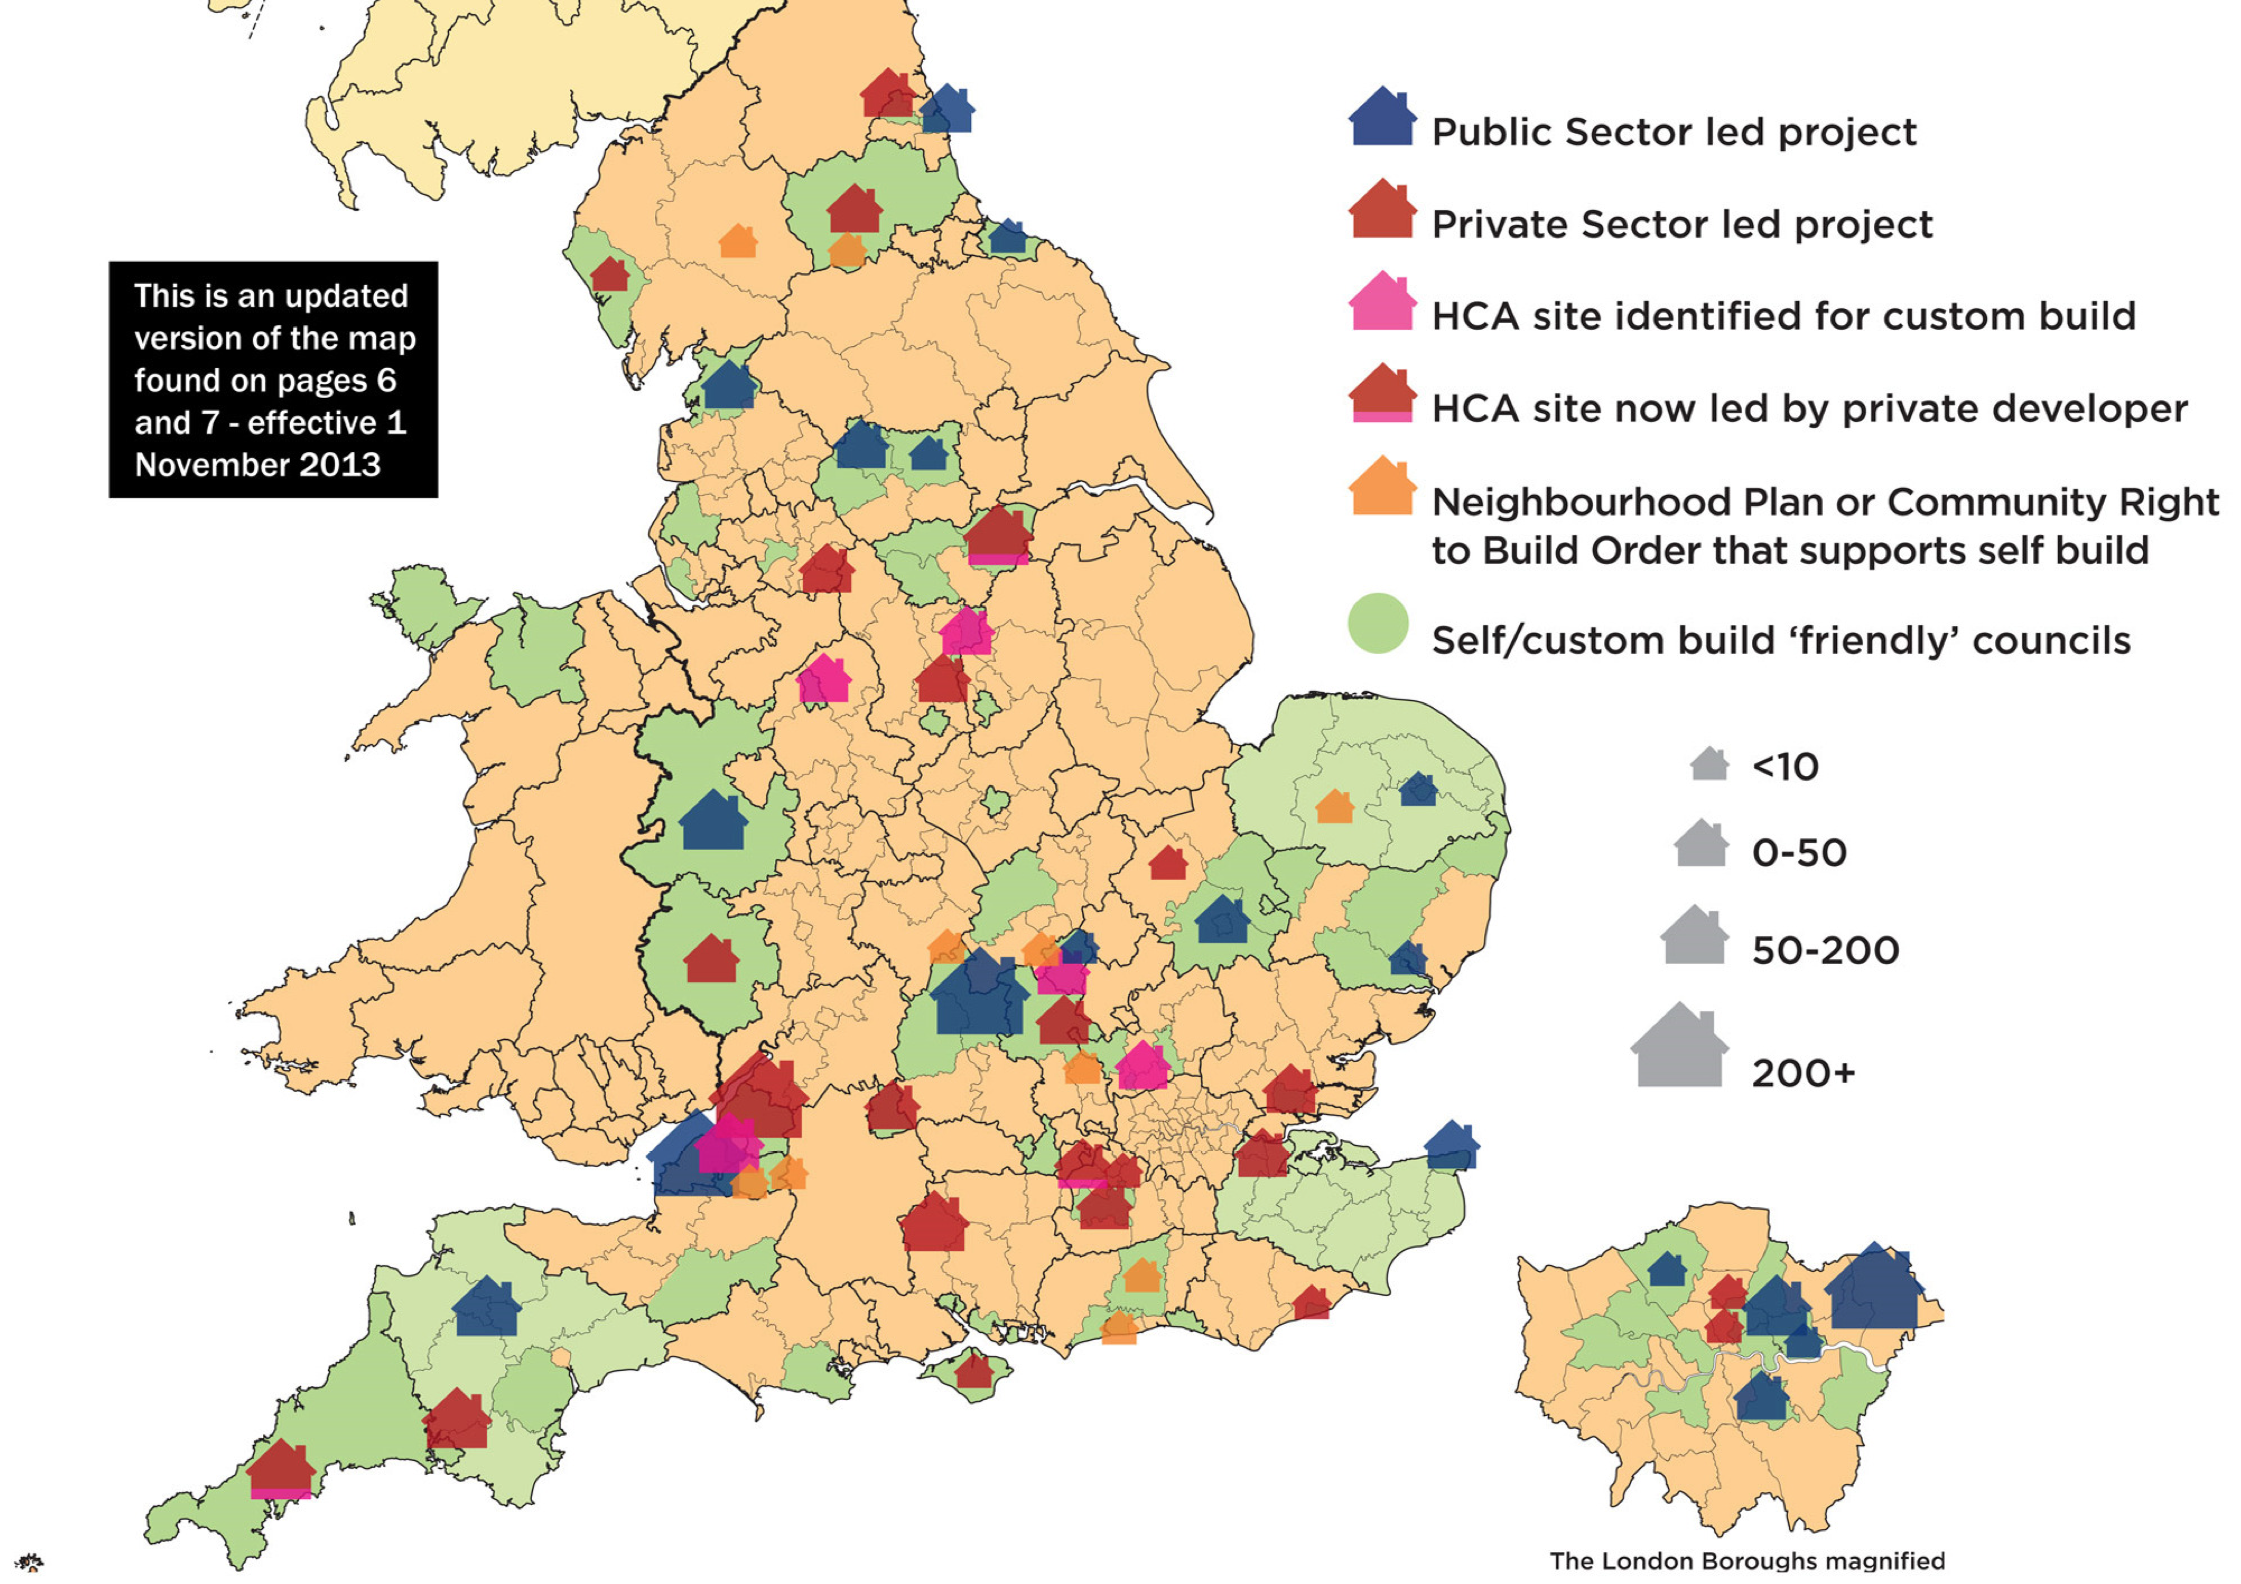 Map of self build projects and council support from NaSBA